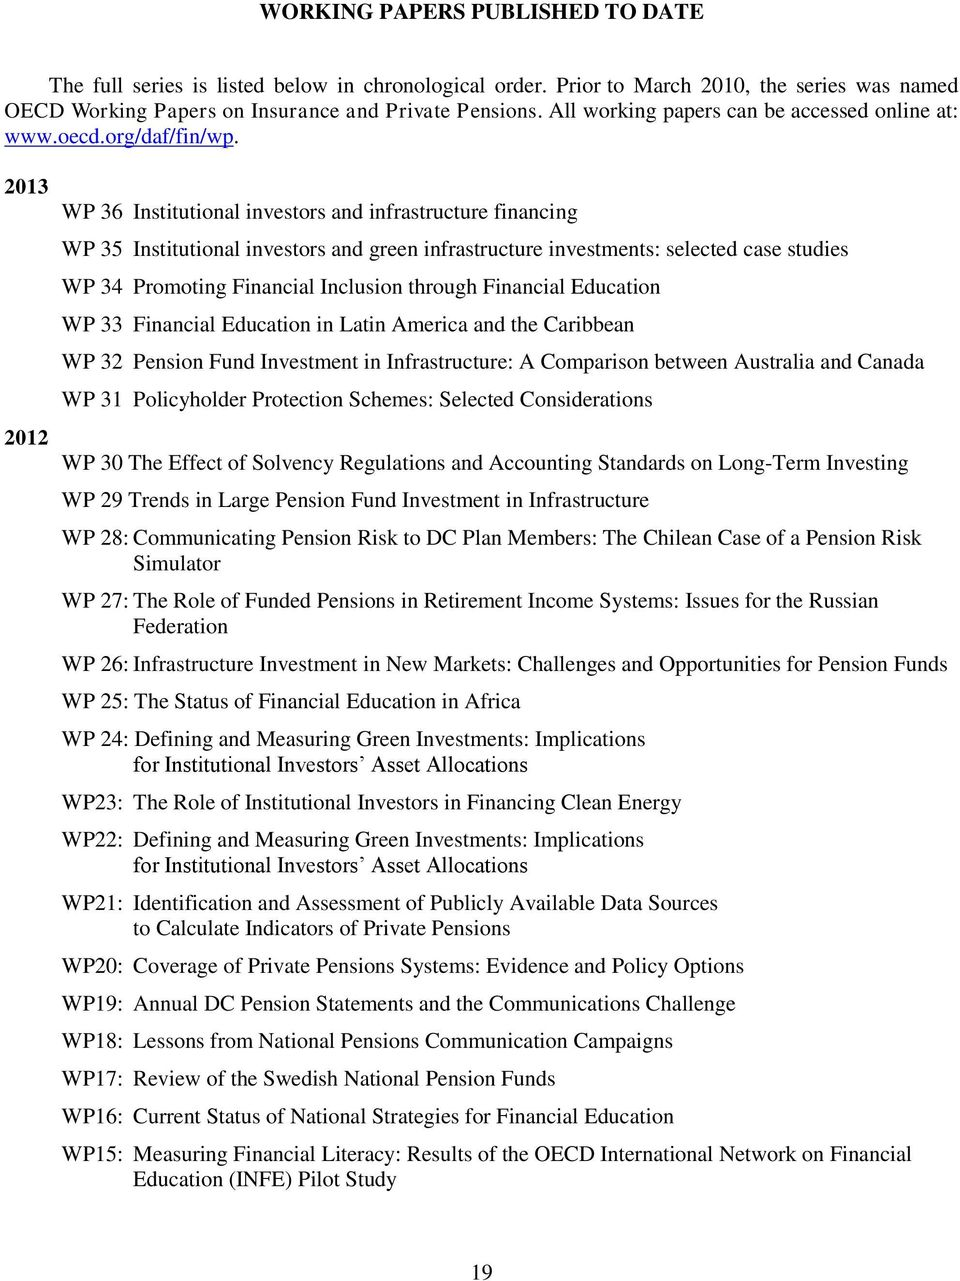 2013 2012 WP 36 Institutional investors and infrastructure financing WP 35 Institutional investors and green infrastructure investments: selected case studies WP 34 Promoting Financial Inclusion